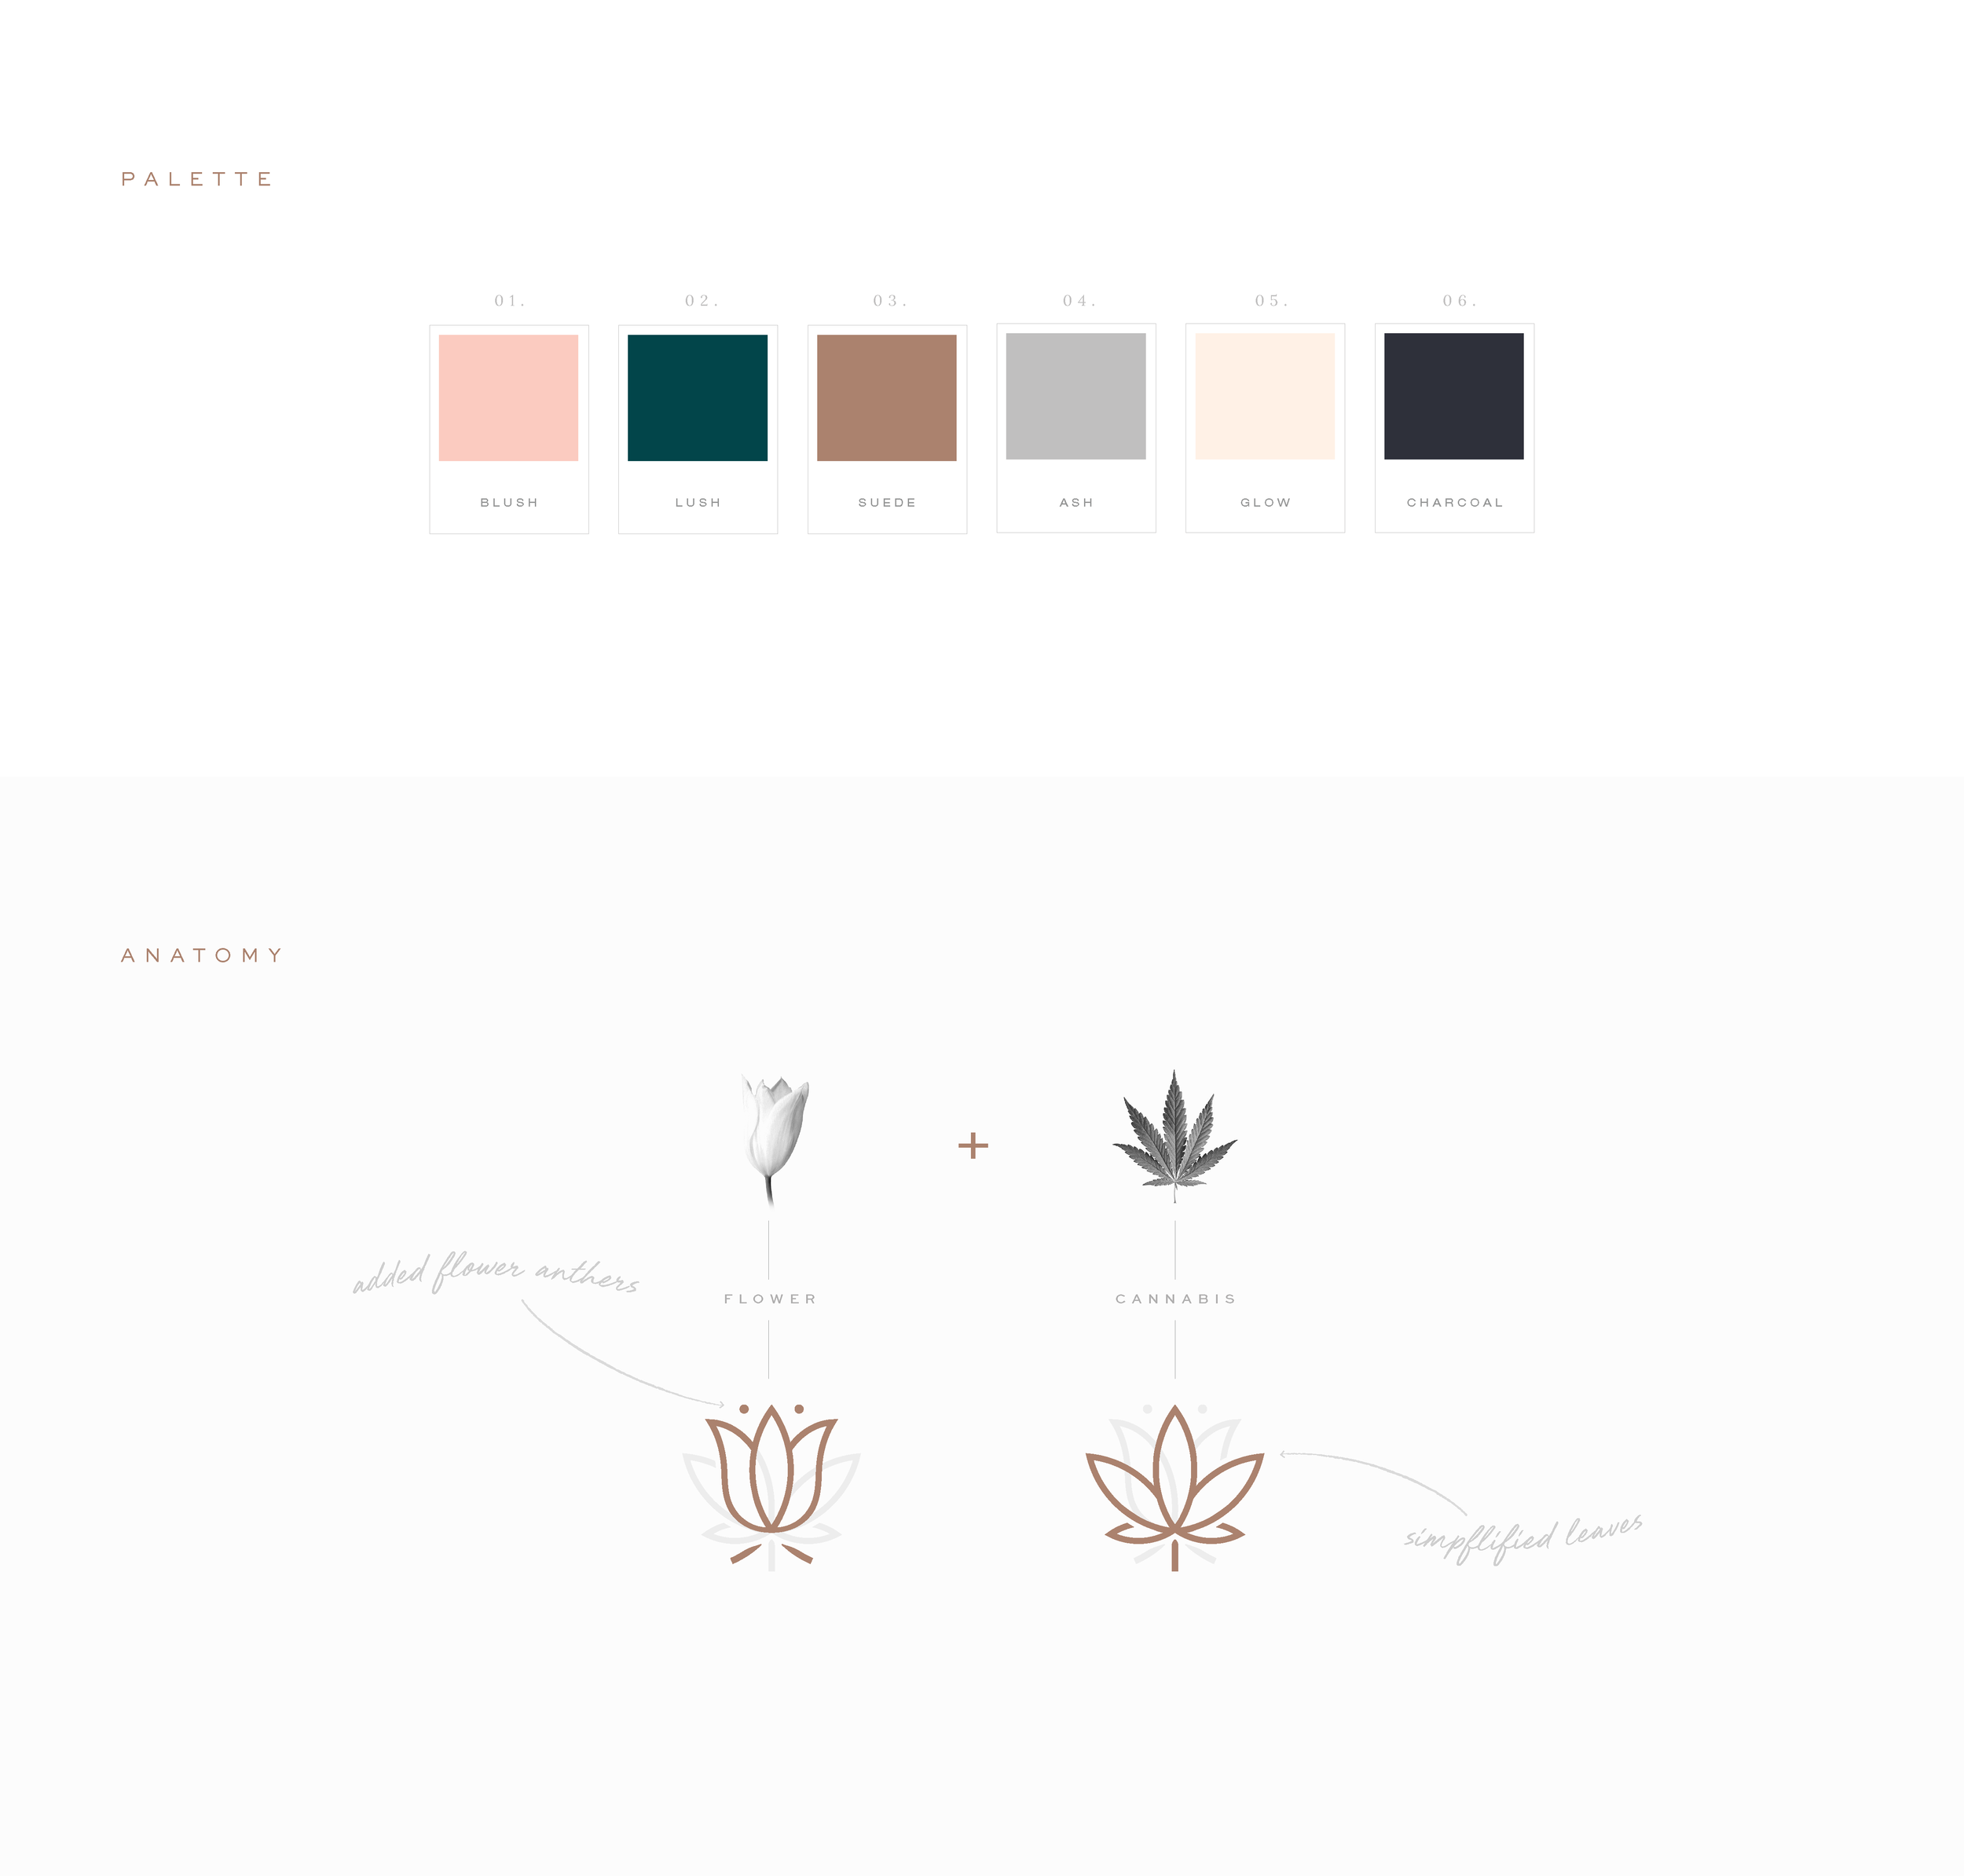 F&F_CaseStudy_Palette & Anatomy.png